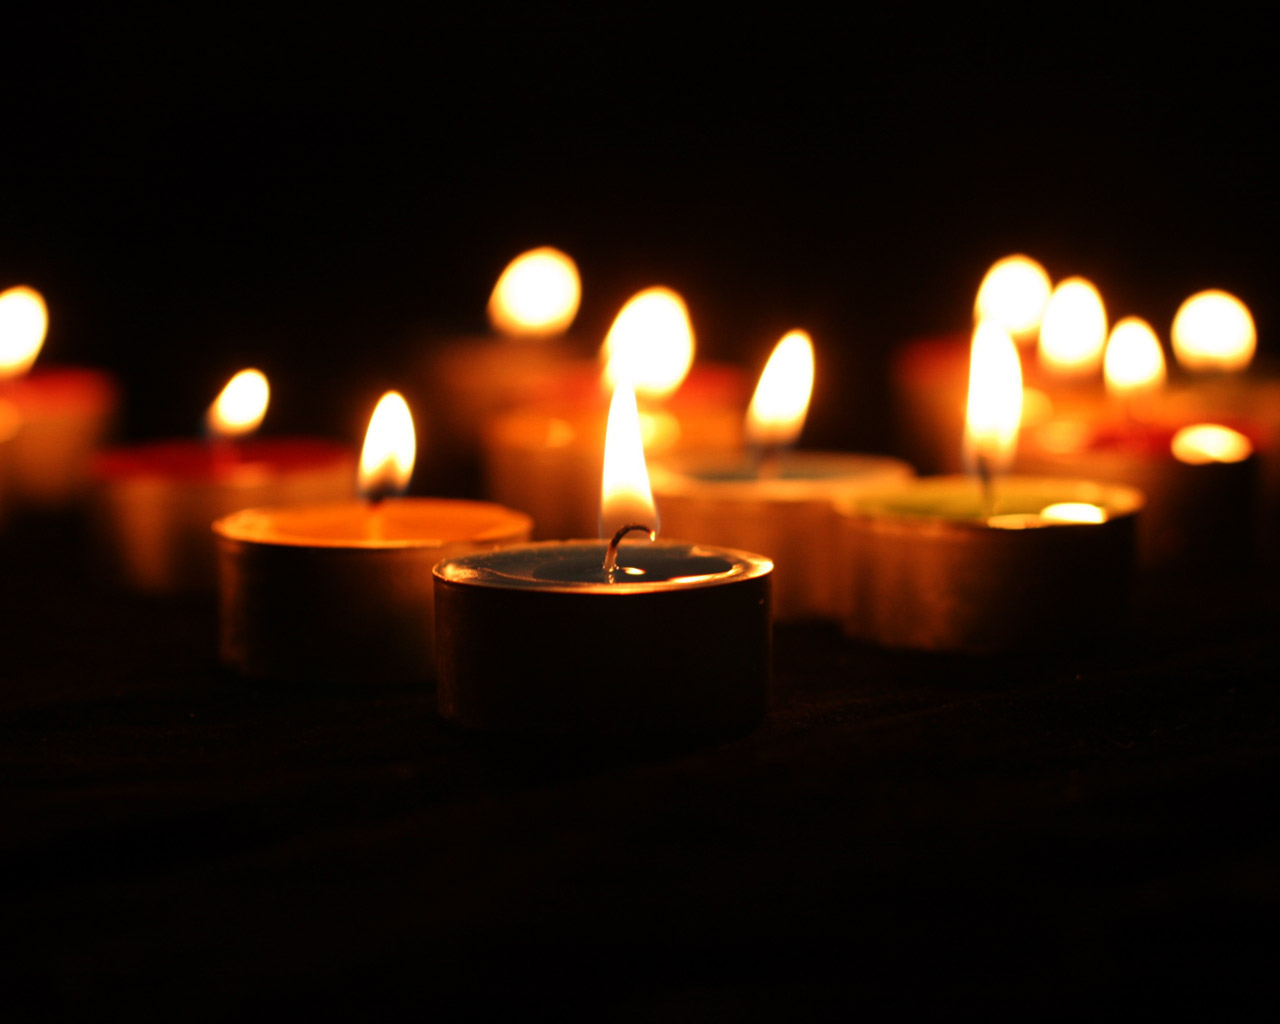 Candles at Night 1028x1024 NO.40 Wallpaper